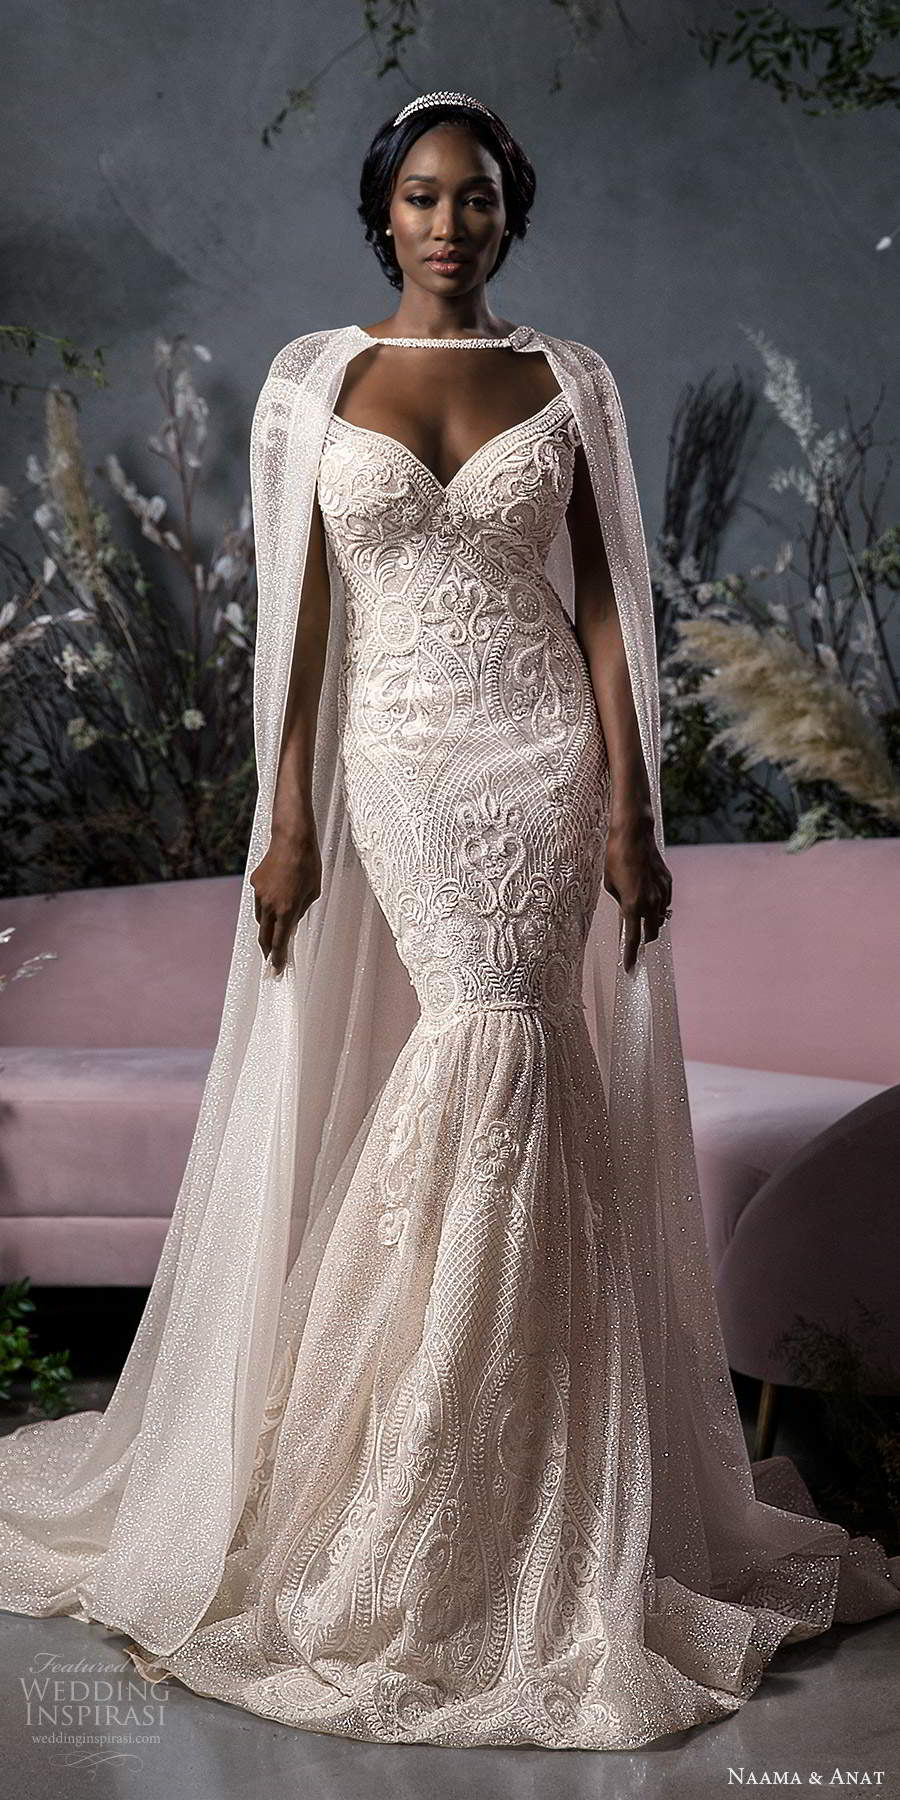 naama anat fall 2020 bridal off shoulder sweetheart neckline fully embellished fit flare mermad wedding dress chapel train blush cape (5) bv